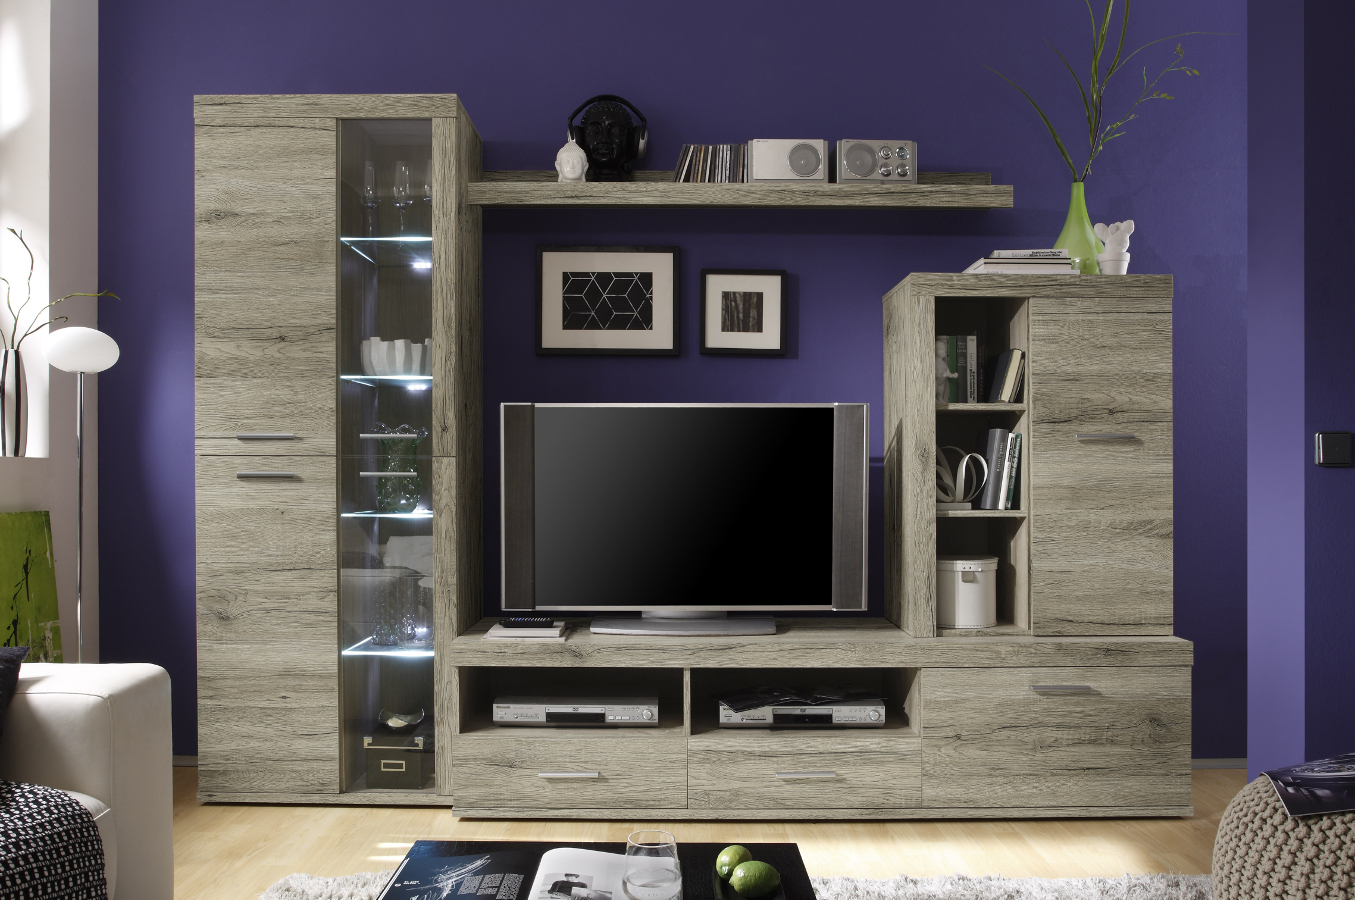 carim wohnwand san remo hell inkl beleuchtung. Black Bedroom Furniture Sets. Home Design Ideas